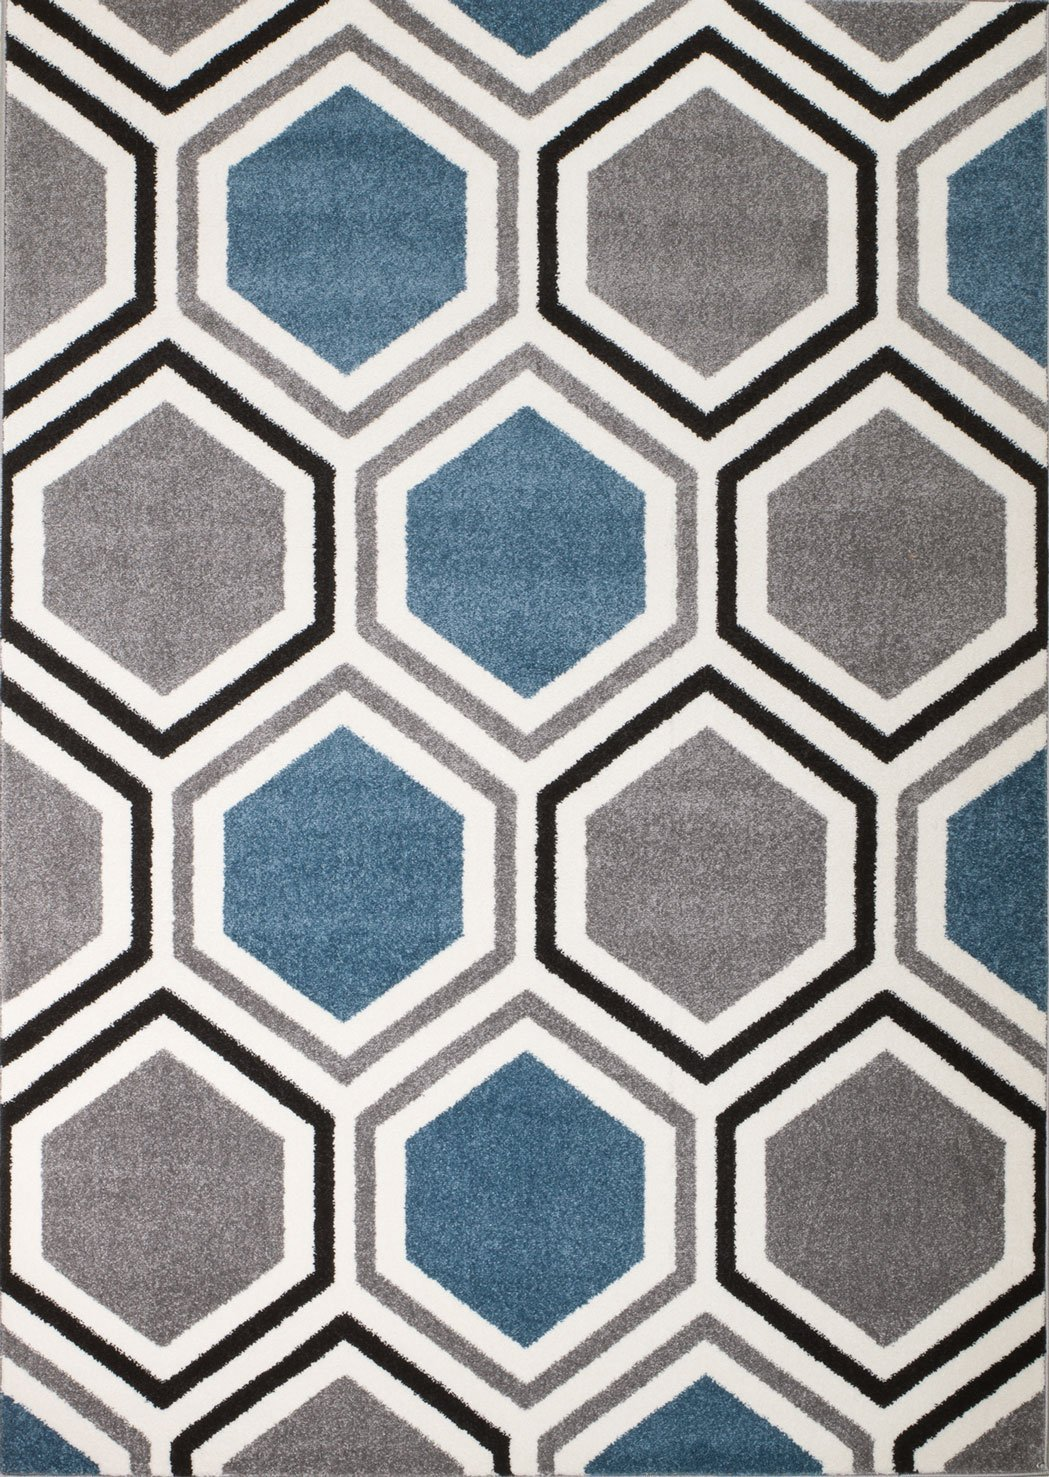 Rio Summit 313 Grey Blue White Area Rug Modern Geometric Many Sizes Available 2 x 7 , 2 x 7 hall way runner